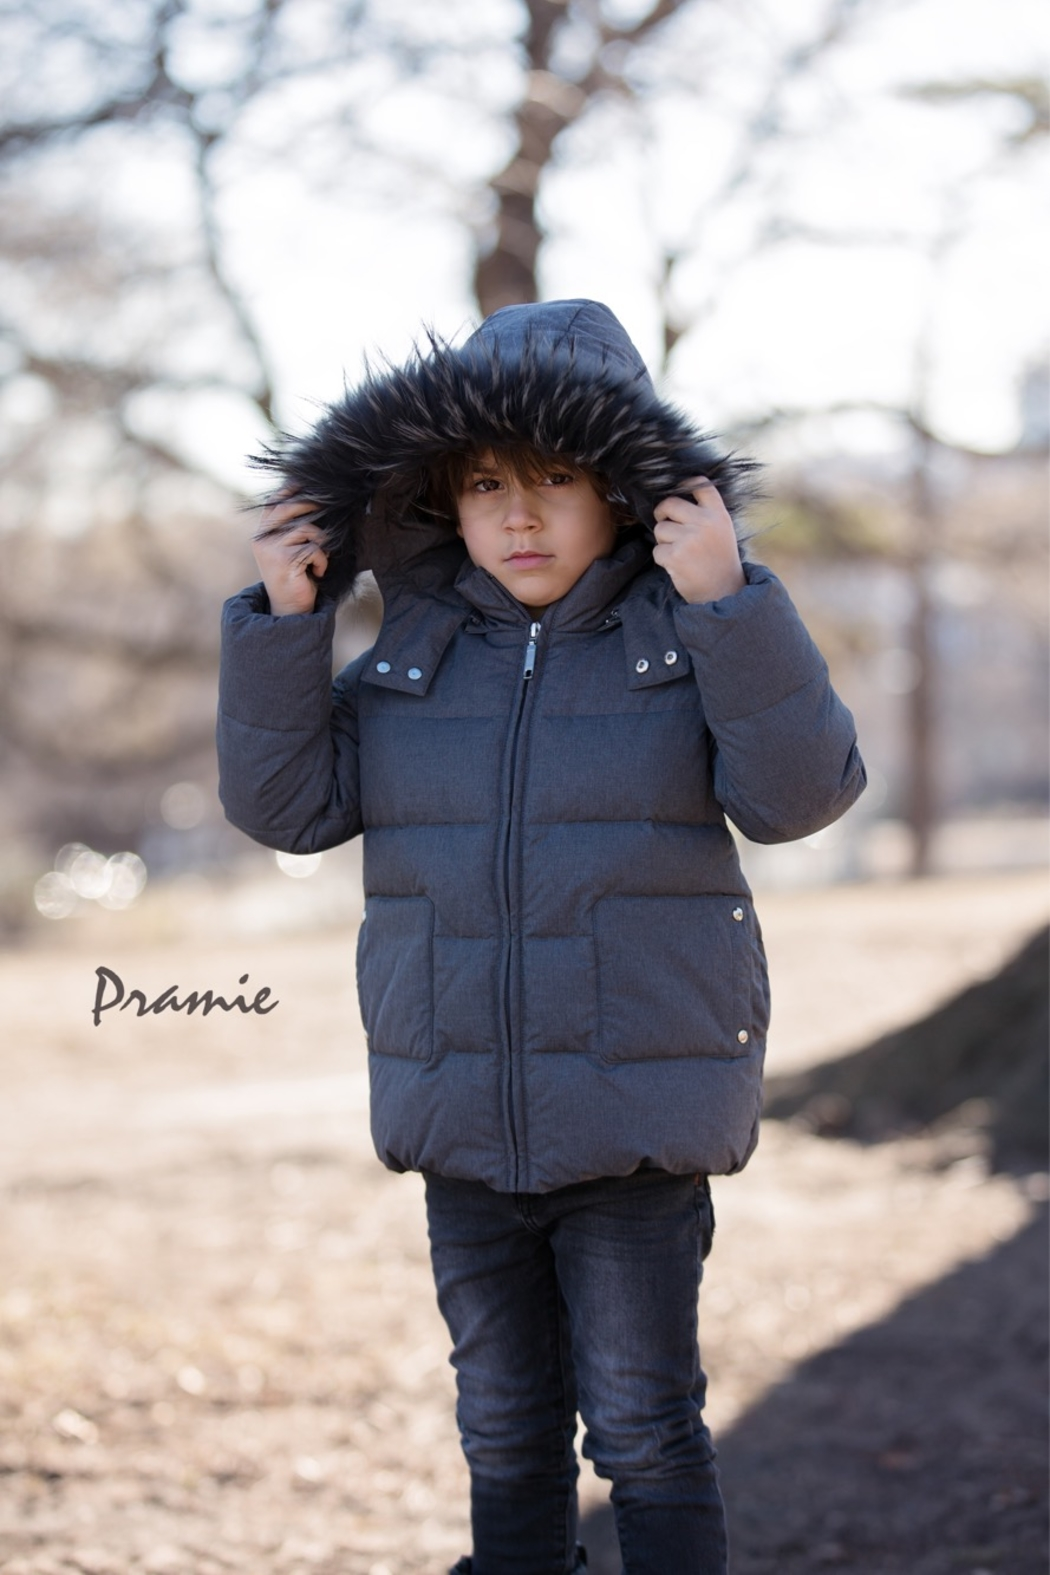 PRAMIE Boys and Girls' Down Filled-Quilted Hooded Jacket Genuine Fur-Trimmed (Unisex) - Front Full Image